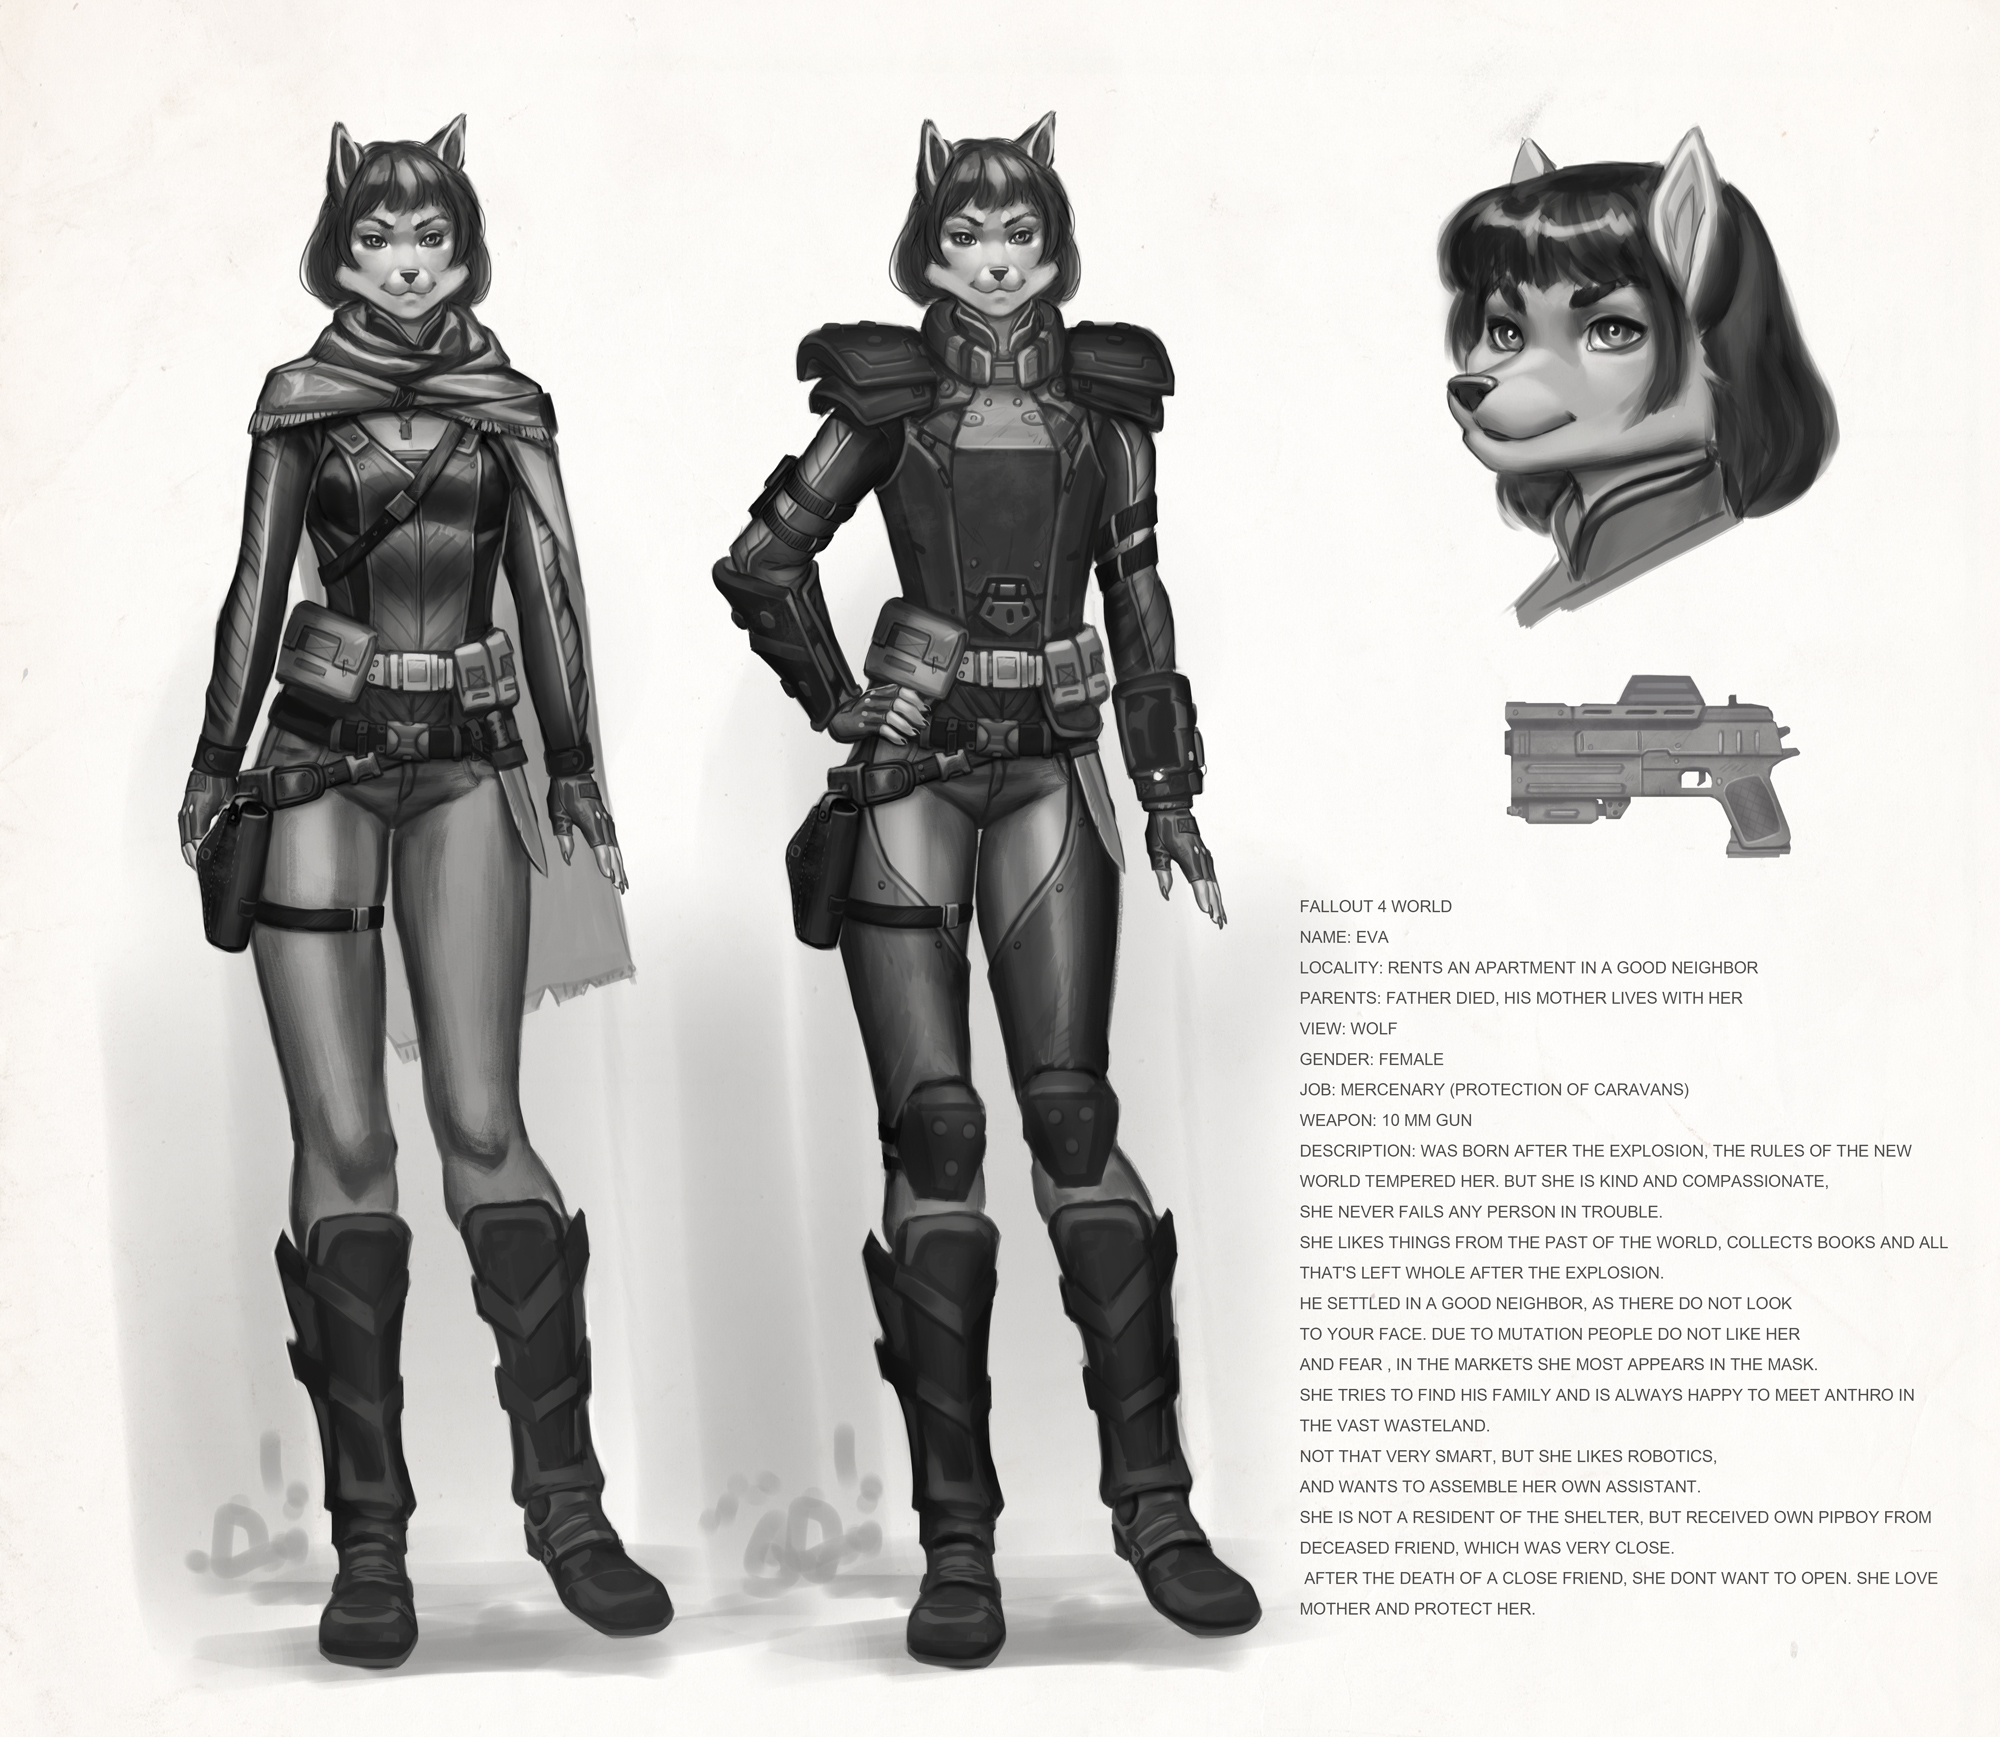 Fallout 4 Character Design Tutorial : Eva fallout fan character wip by vagab nda on deviantart